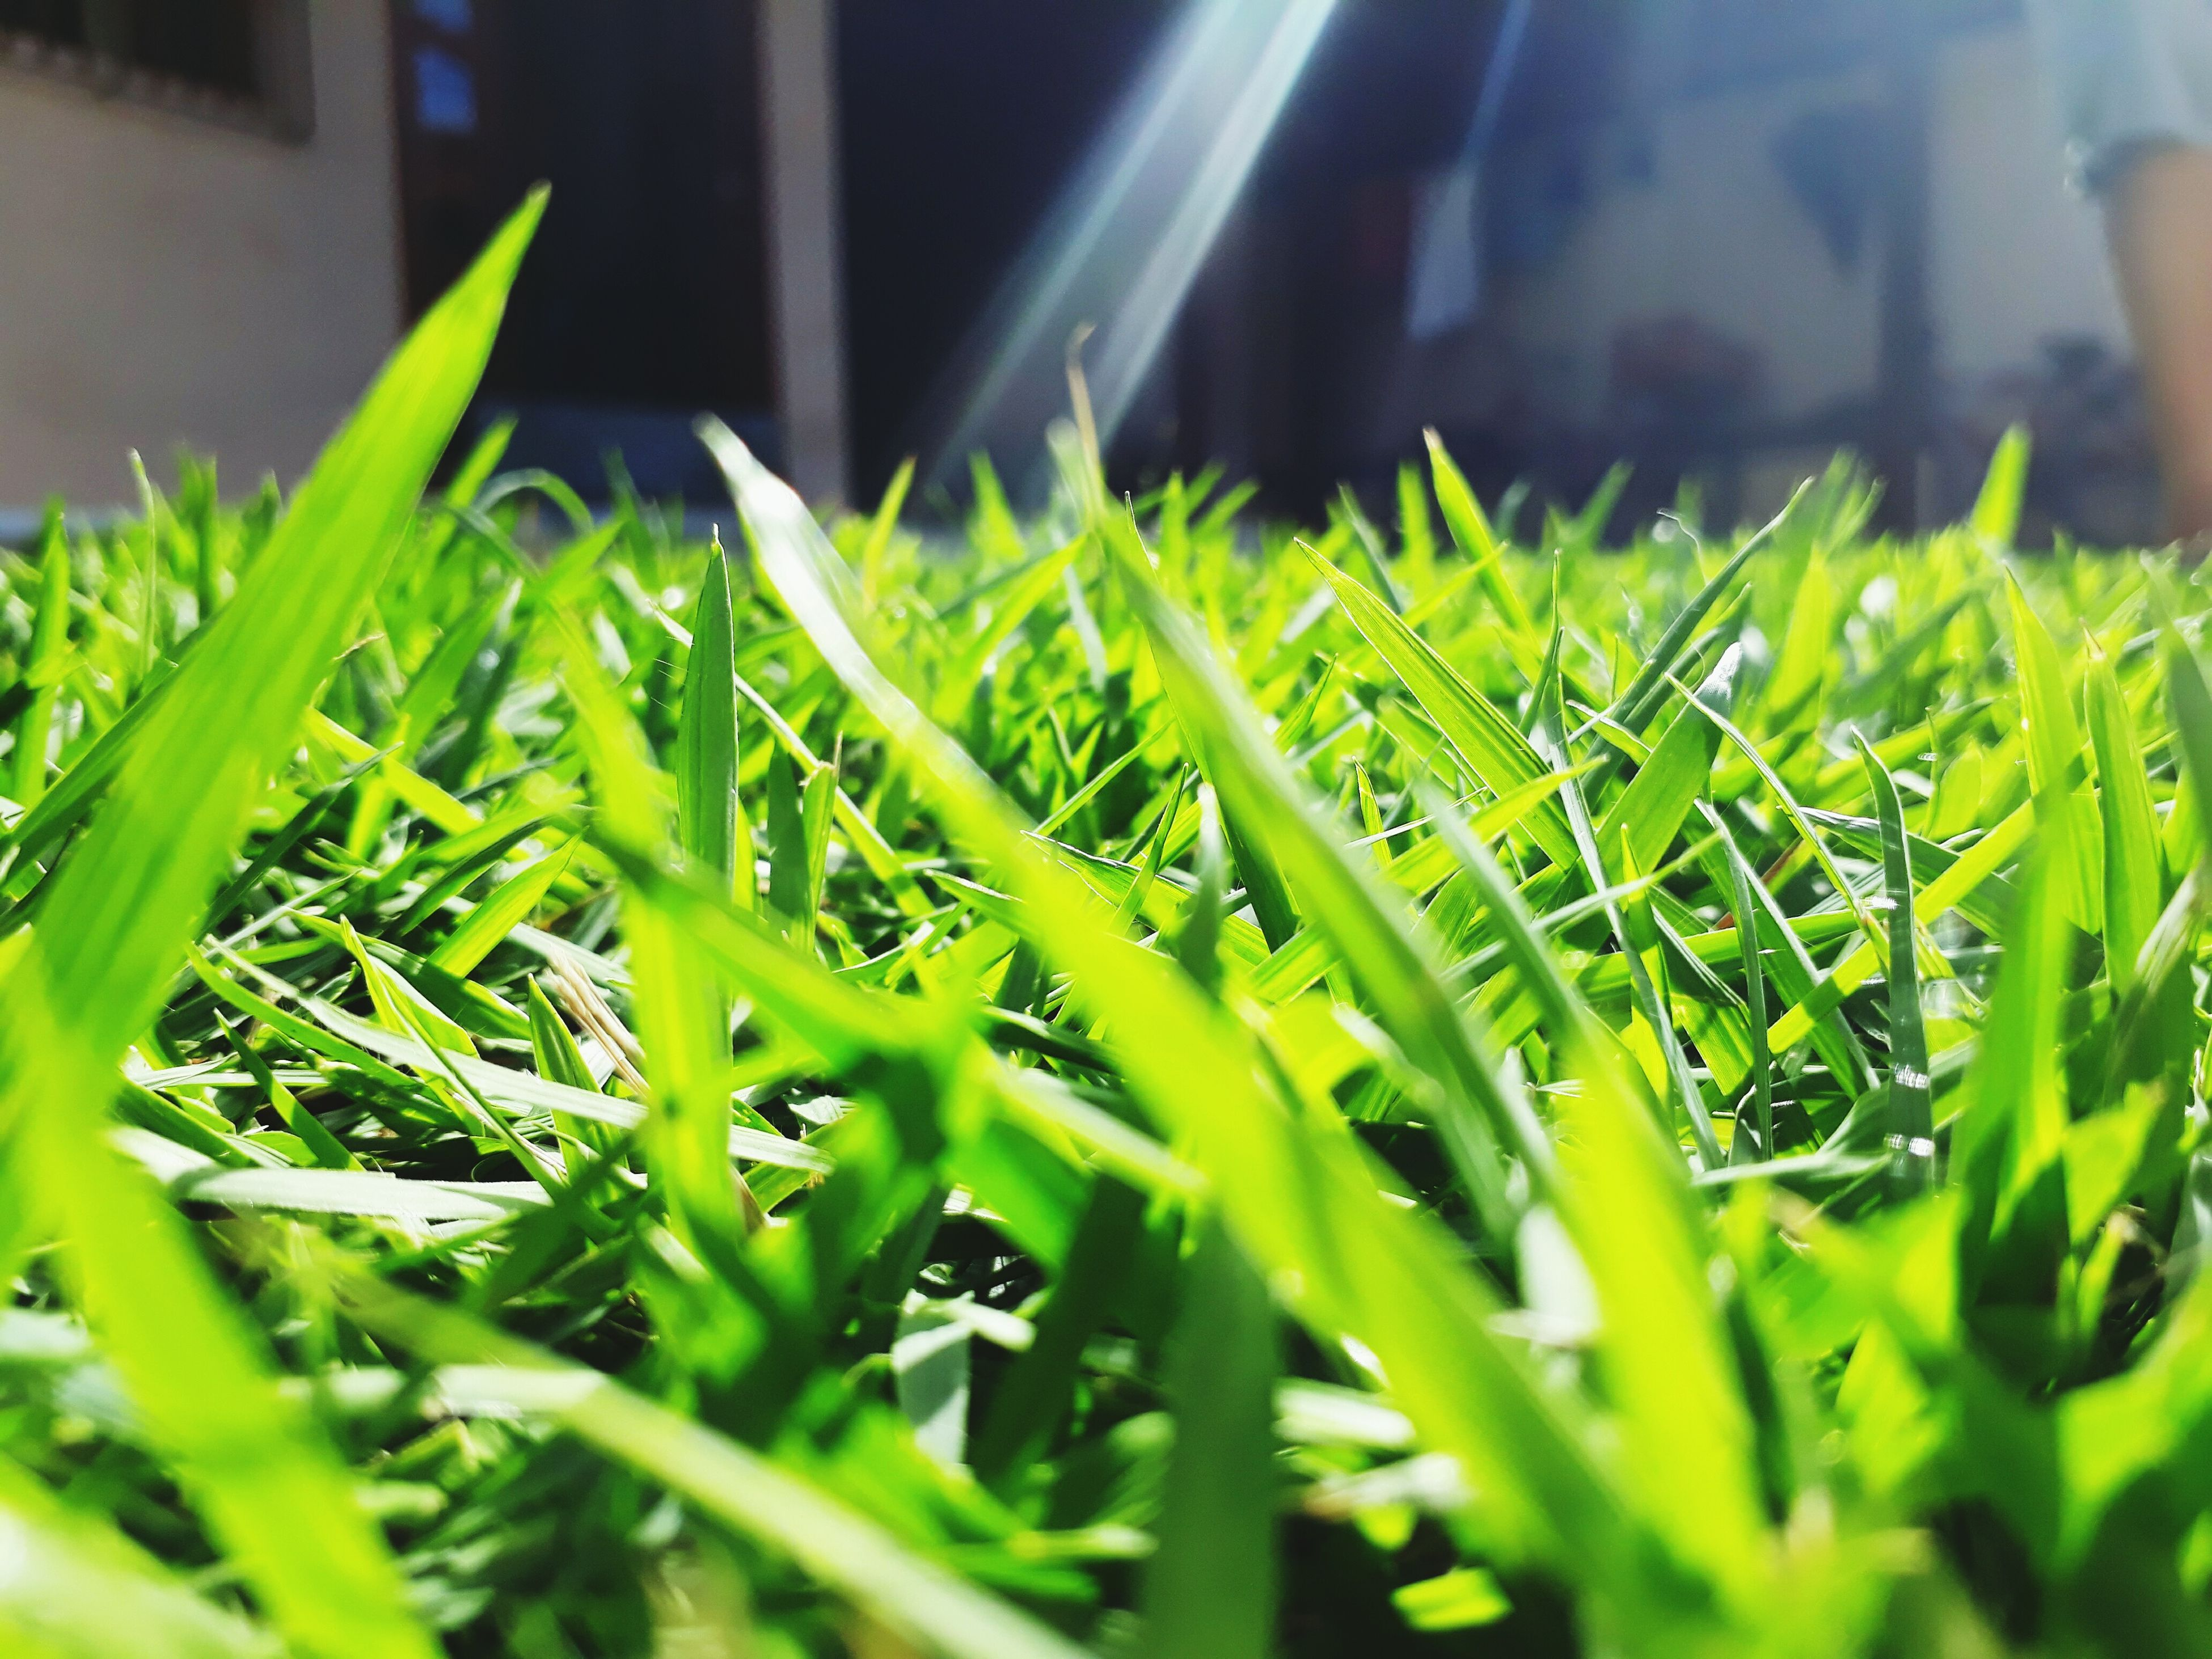 green color, growth, grass, close-up, day, no people, plant, outdoors, nature, freshness, greenhouse